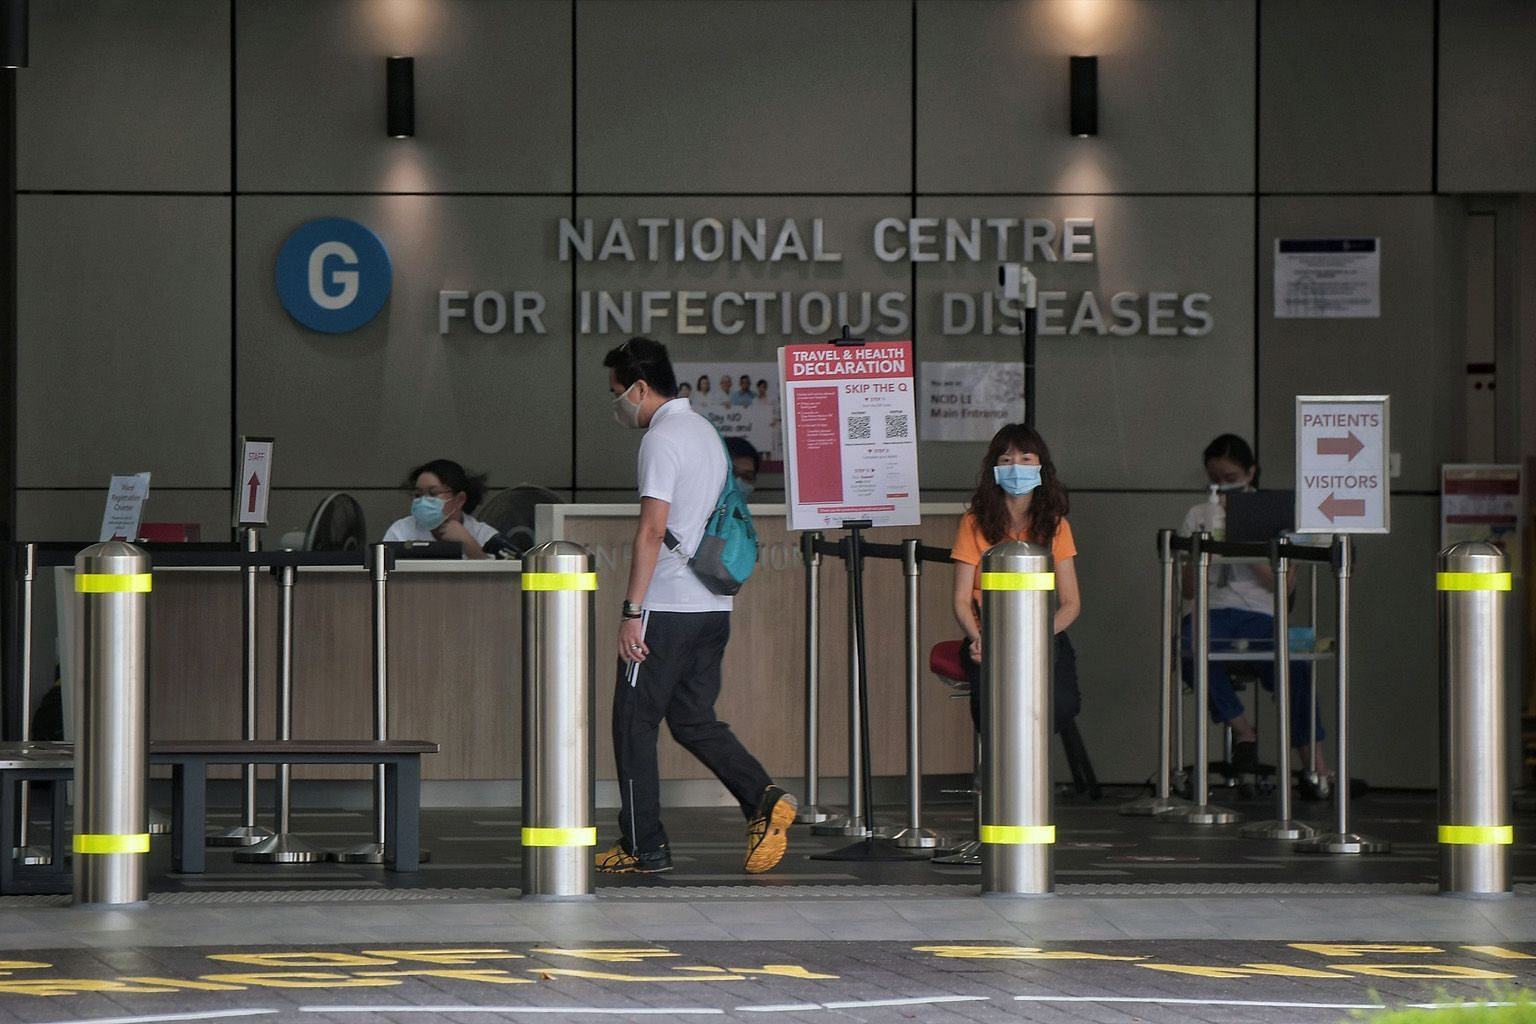 The National Centre for Infectious Diseases is working with two other institutions to find out how the Covid-19 outbreak is shaping and being shaped by social and behavioural factors in Singapore's population.